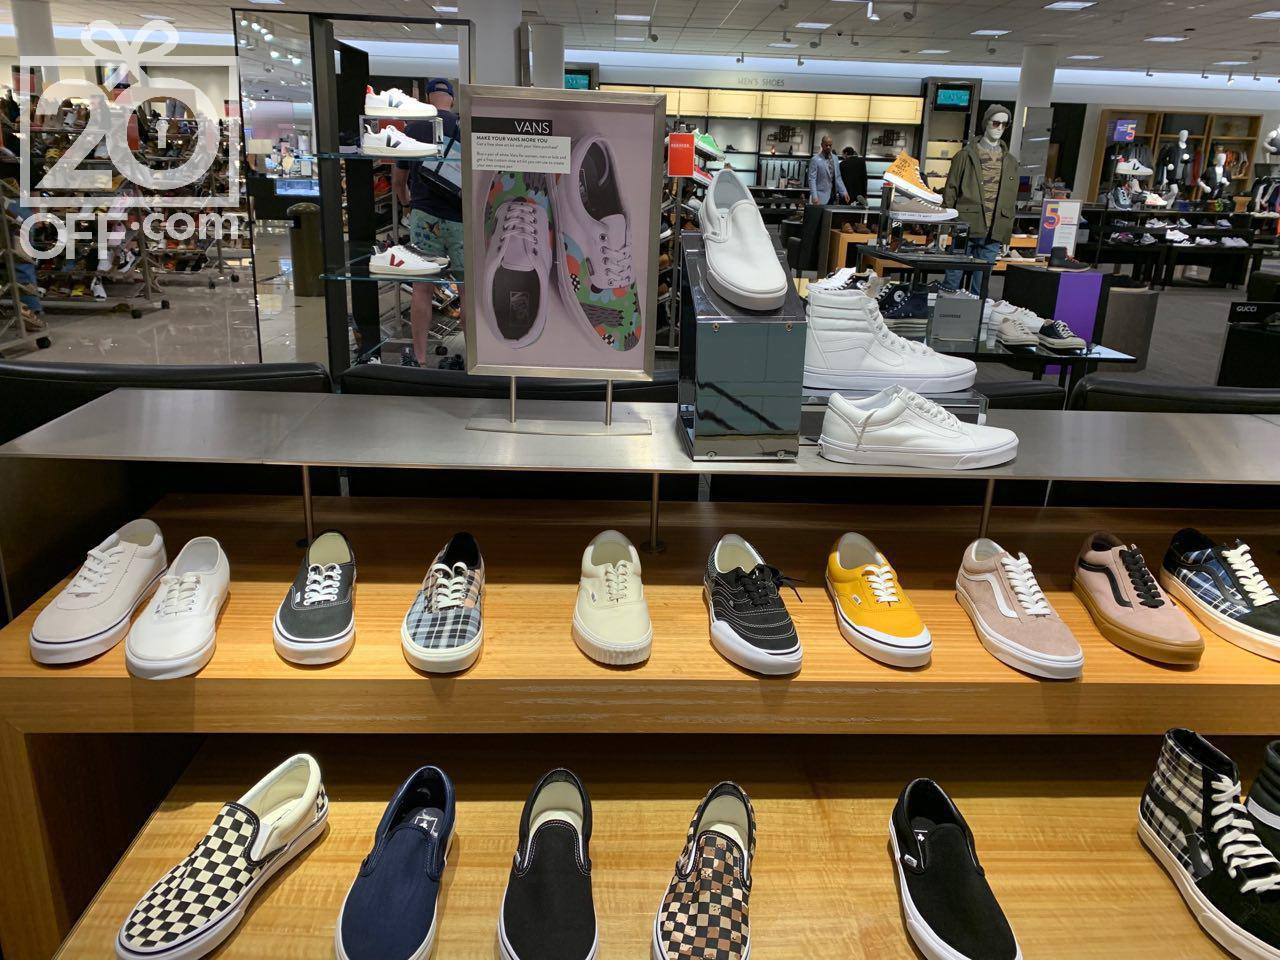 Nordstrom Shoes and Accessories